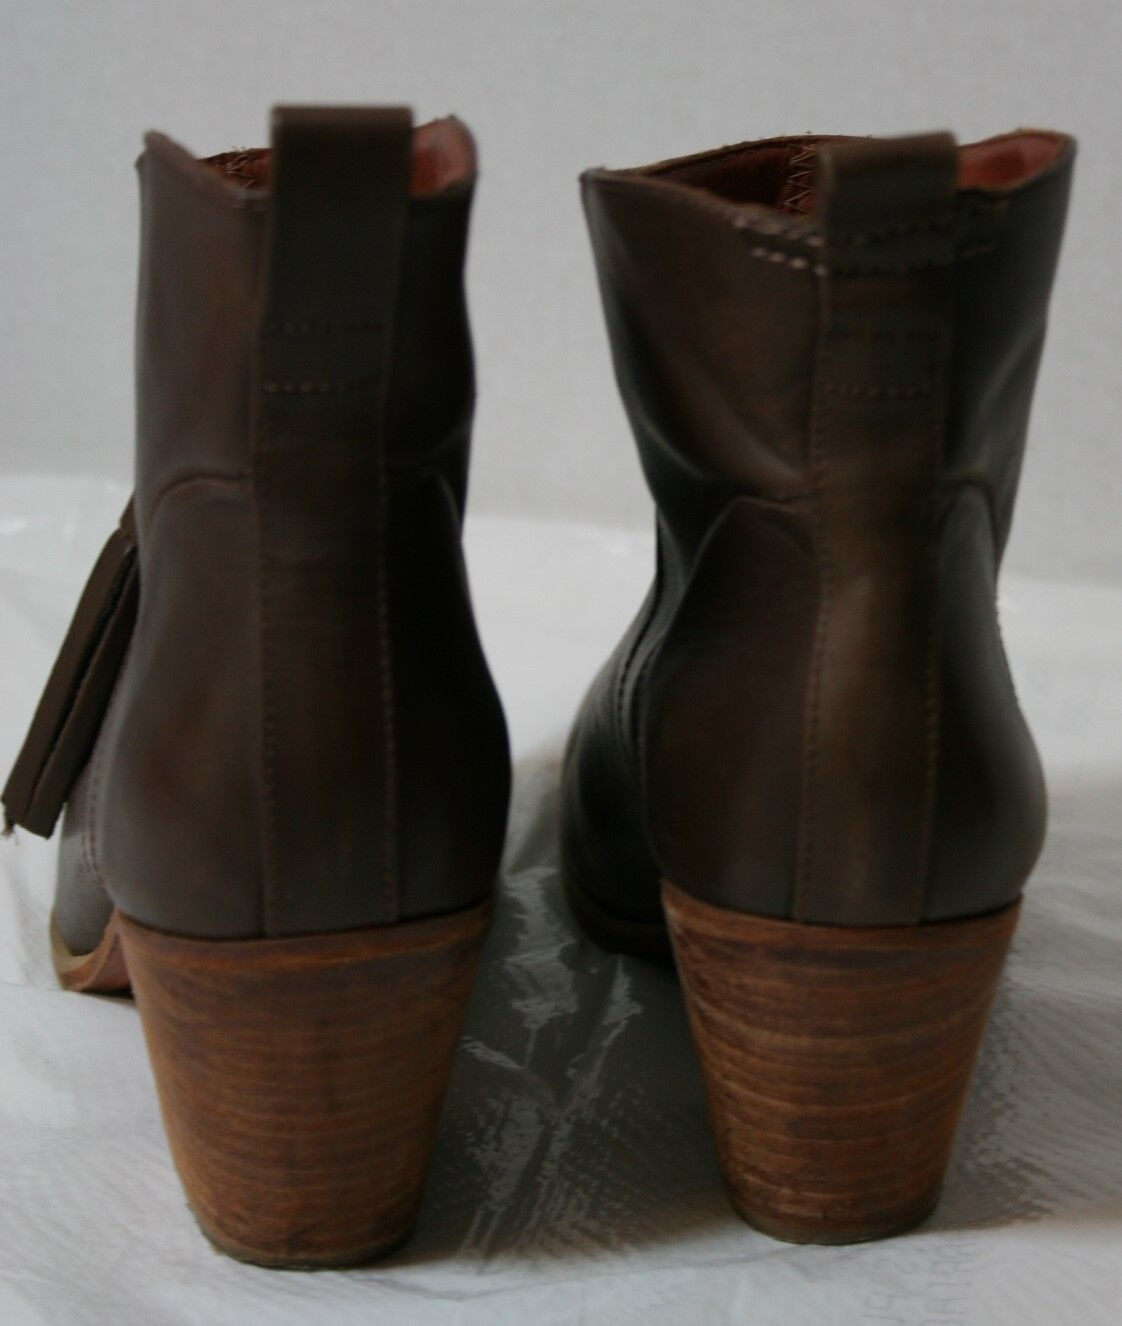 ANTHROPOLOGIE BOOKMARK BOOTIES RACHEL COMEY SHOES ANKLE ANKLE SHOES BOOTS 9.5 1c943e